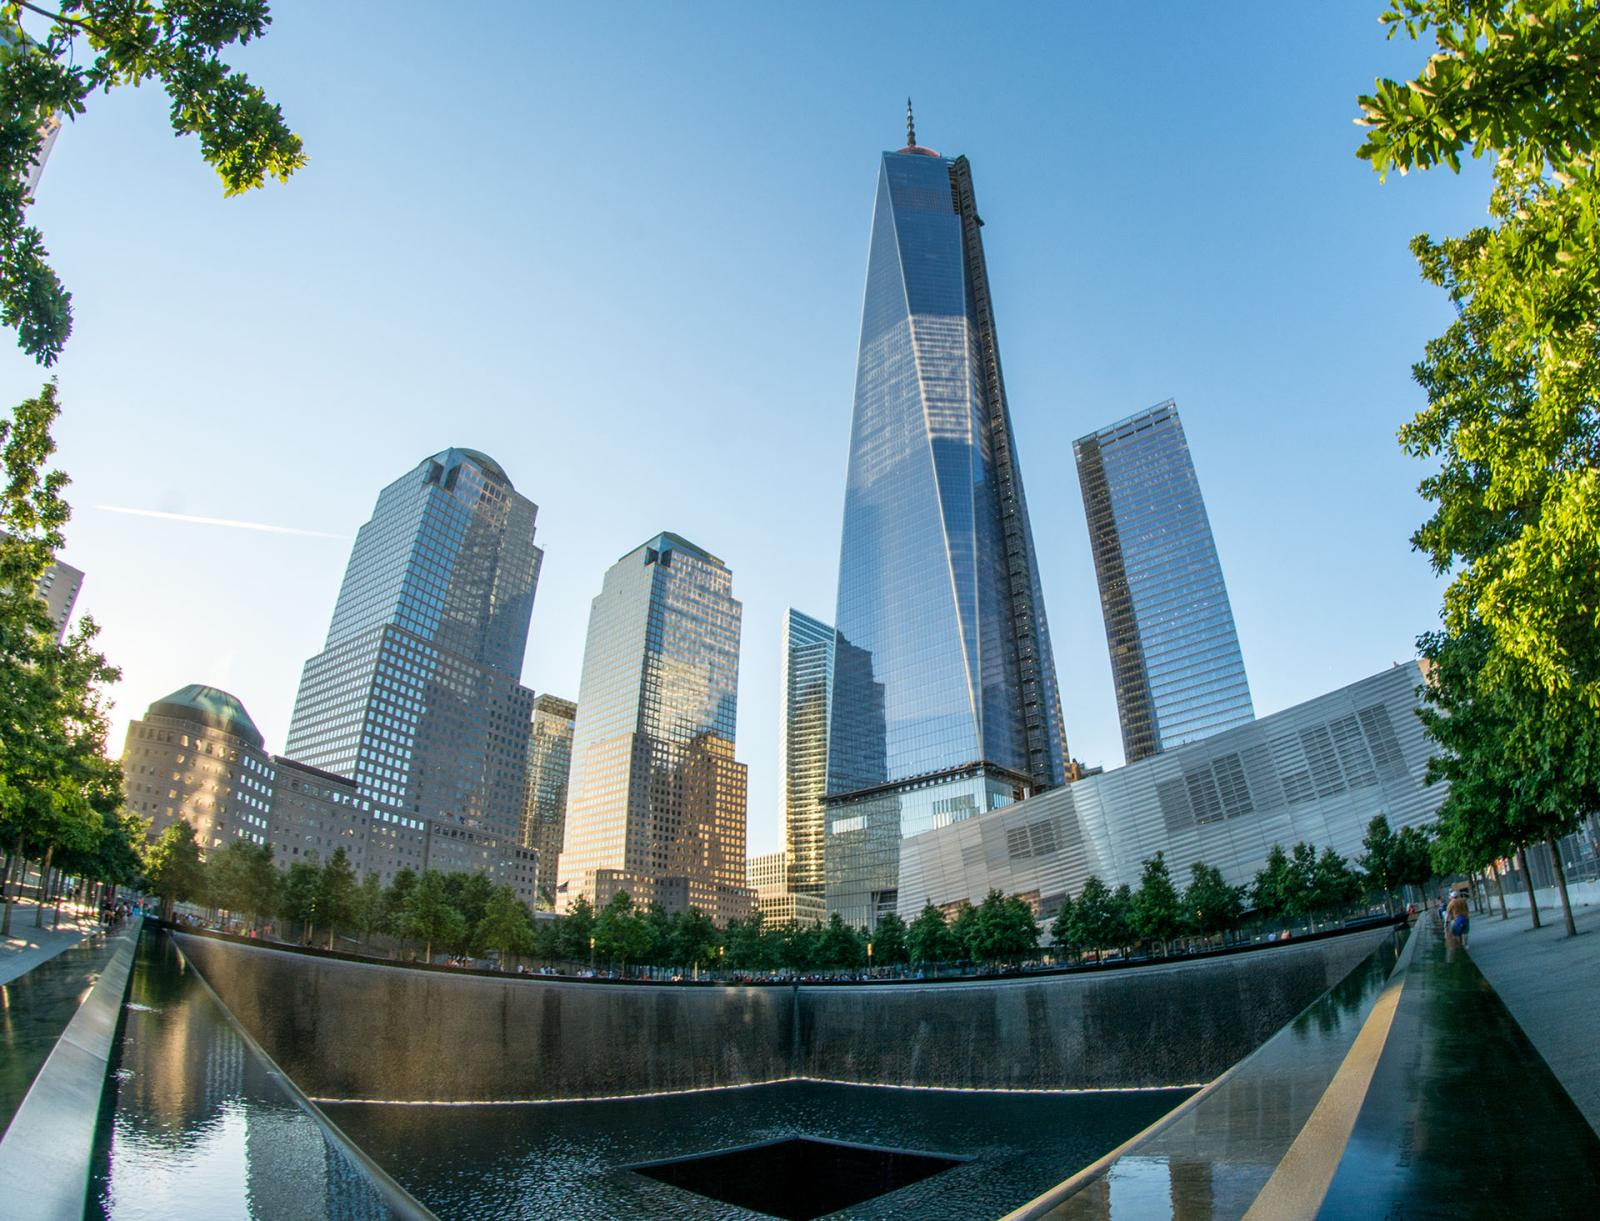 NEW YORK CITY - CIRCA JUNE 2013: NYC's 9/11 Memorial with new sk